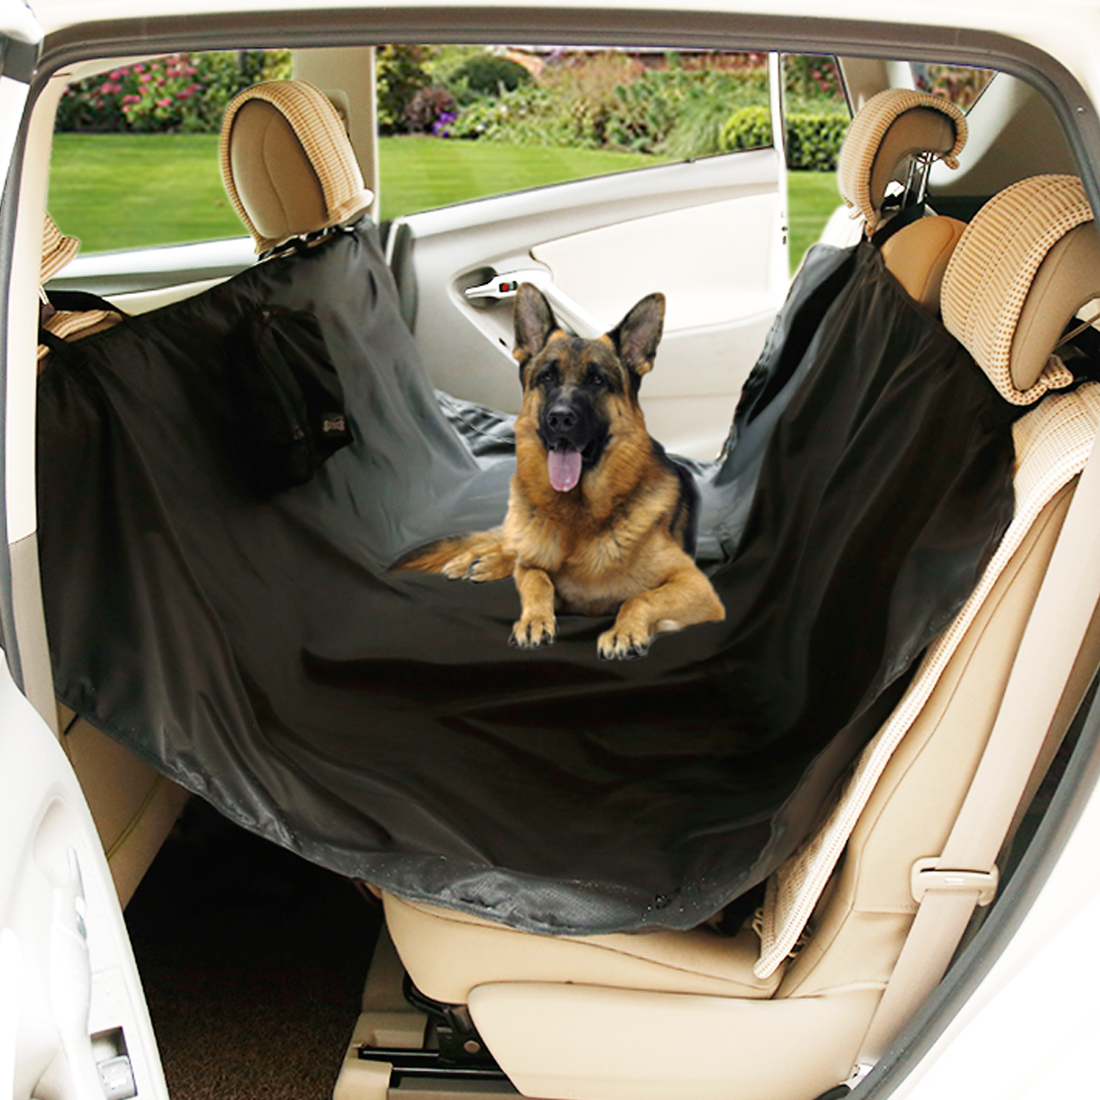 Portable Dog Car Seat Cover Travel Pet Hammock Seat Protector Cover Mat Black DOGLEMI Authorized